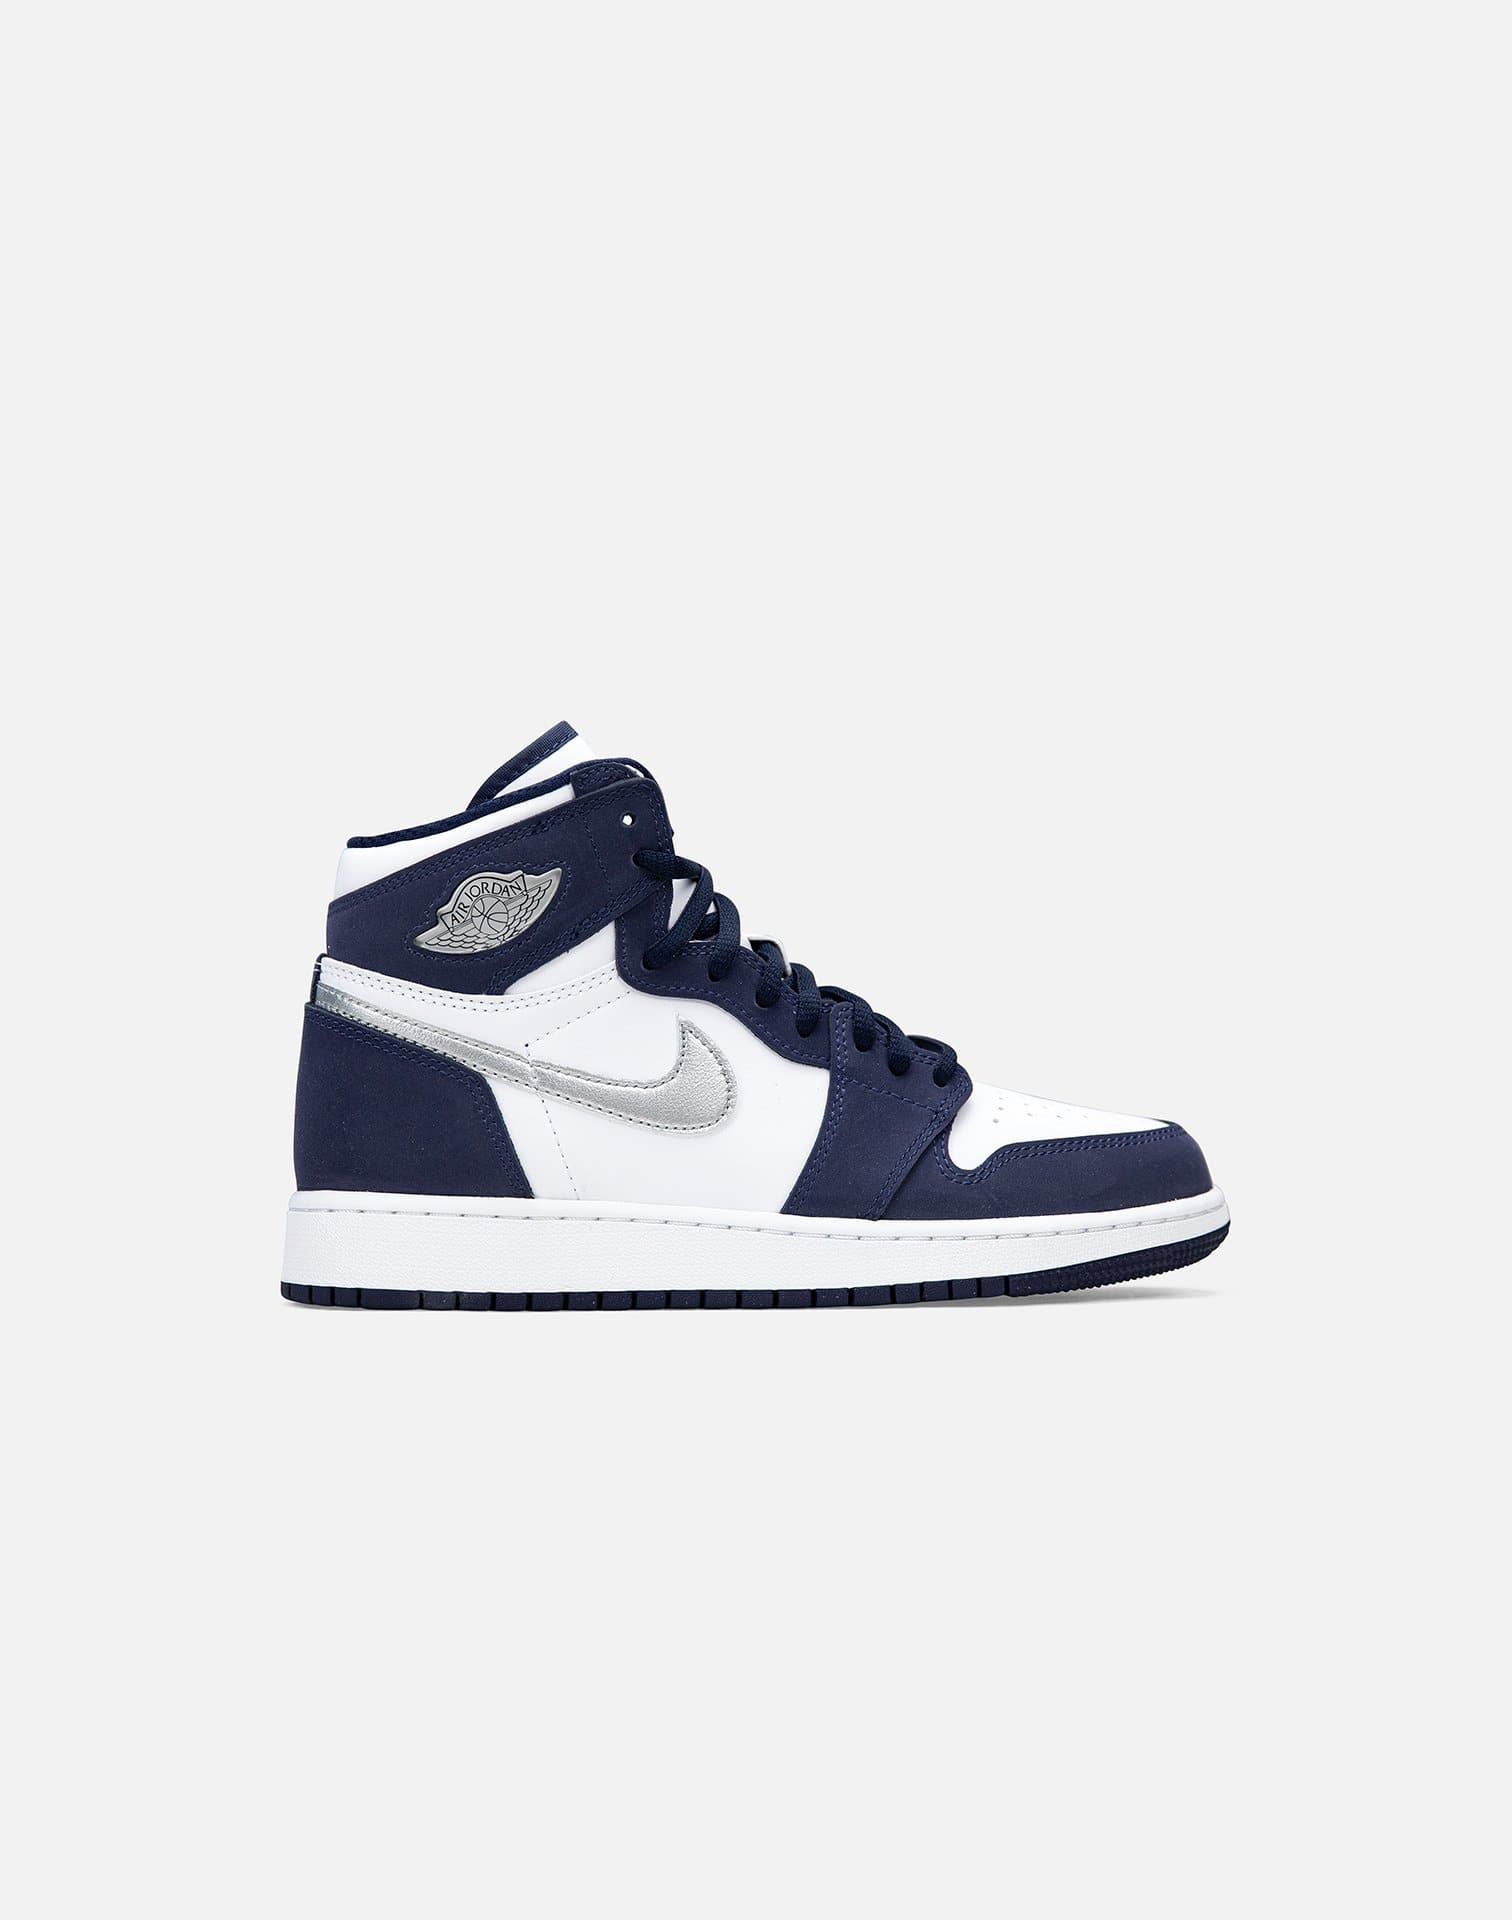 Jordan AIR JORDAN RETRO 1 HIGH OG CO.JP 'JAPAN' GRADE-SCHOOL